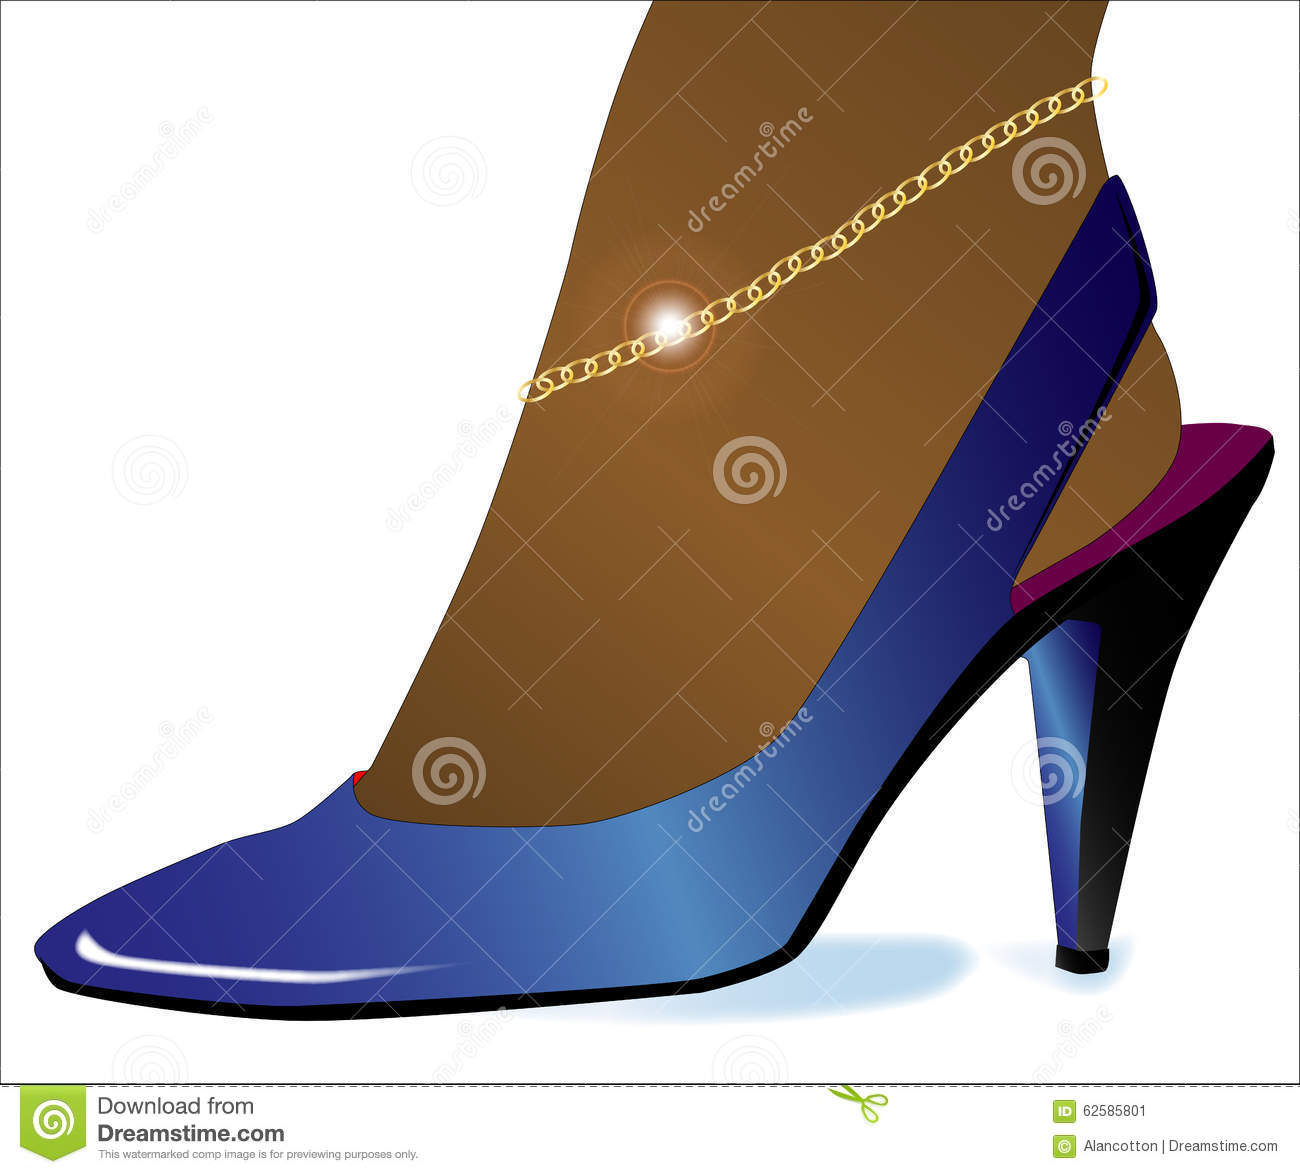 2b53f85fee Gold High Heel Shoe Stock Illustrations – 146 Gold High Heel Shoe Stock  Illustrations, Vectors & Clipart - Dreamstime